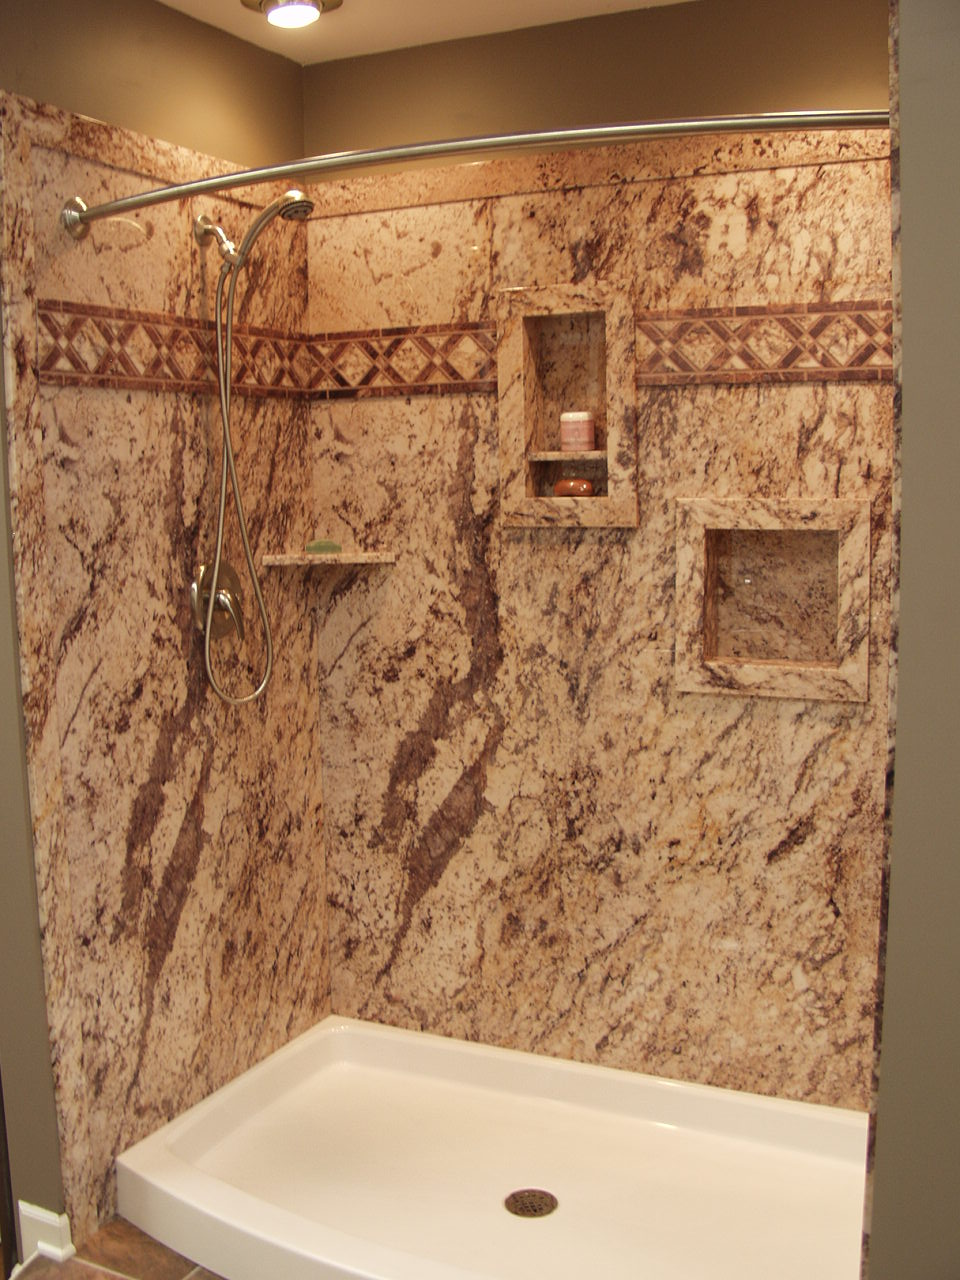 Bathroom Stall Panels are shower wall panels cheaper than tile? 7 factors you need to know.